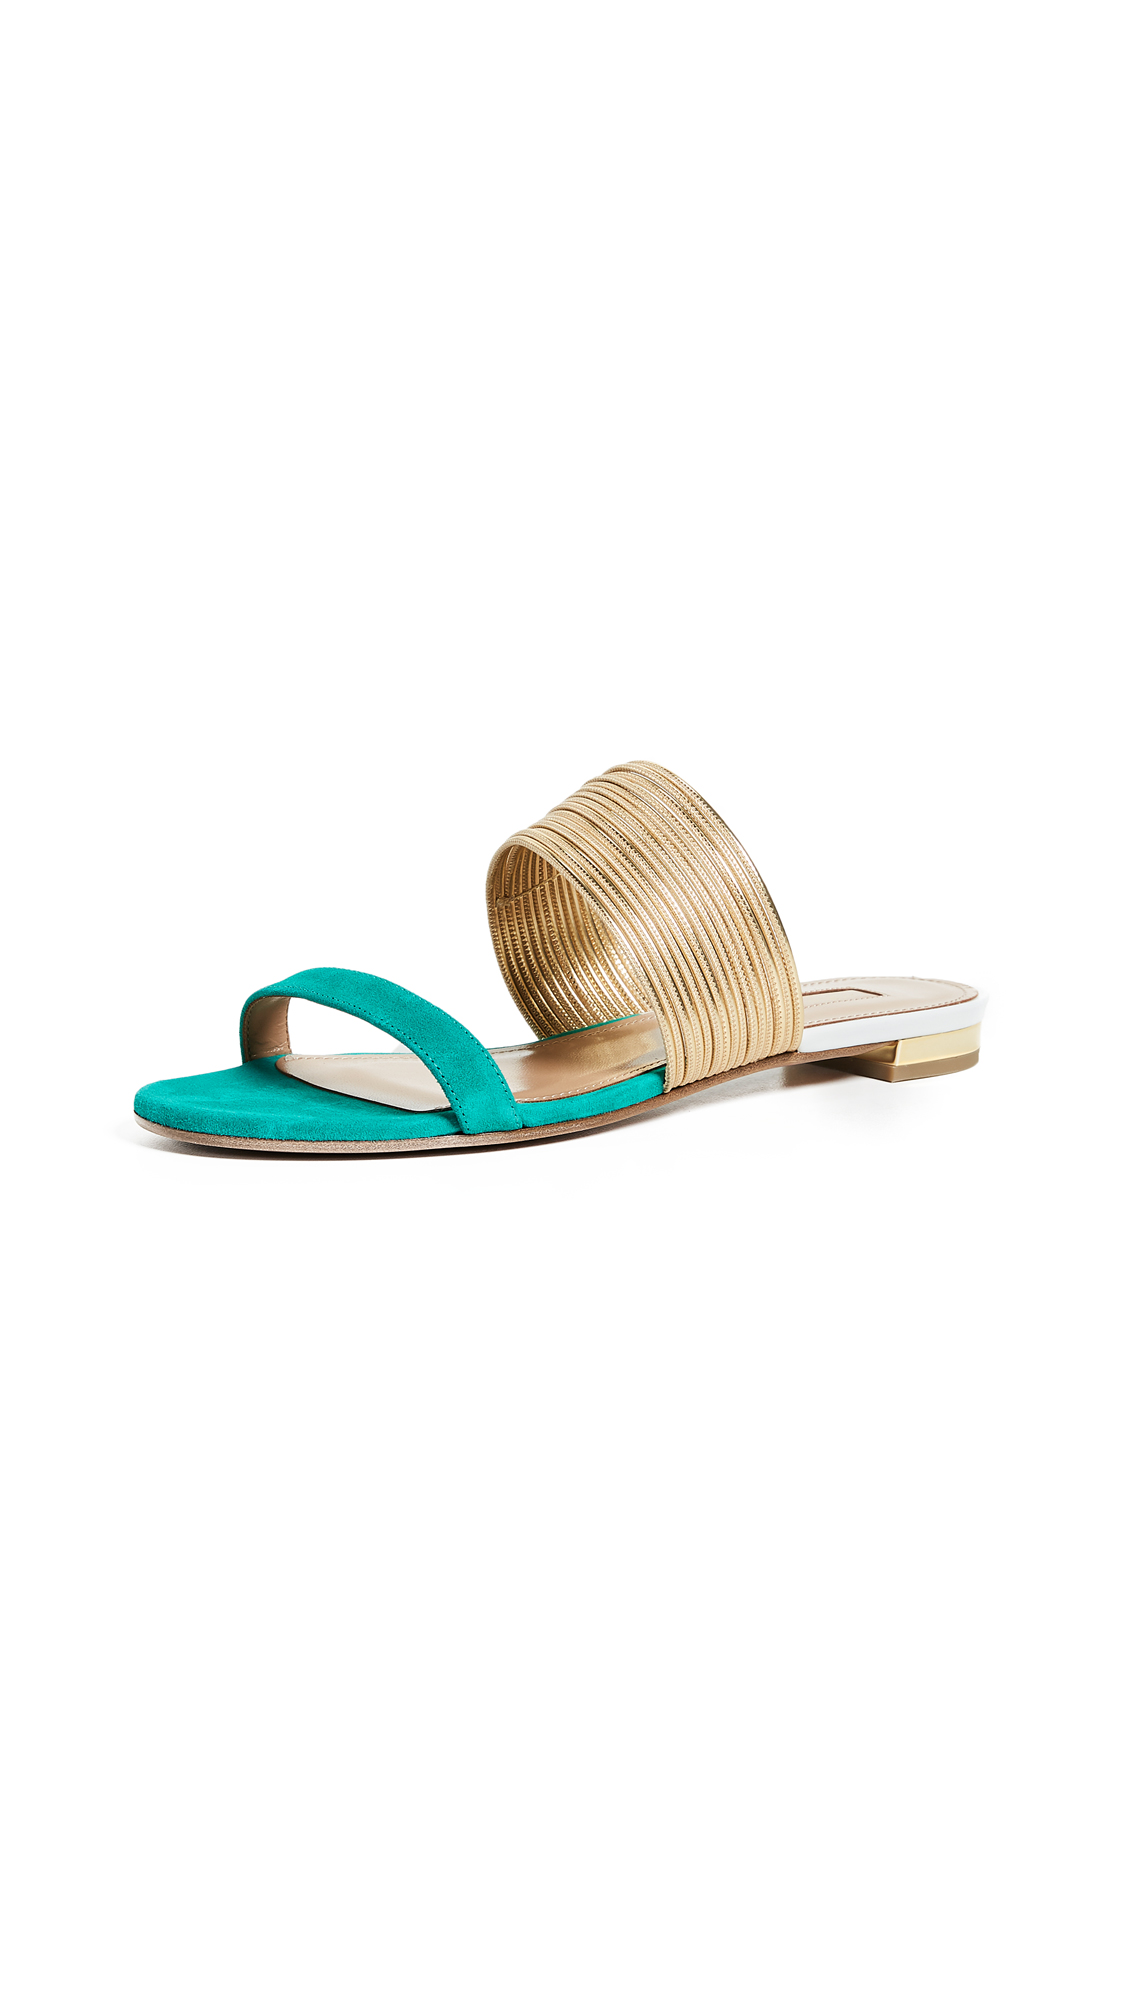 Aquazzura Rendez Vous Flat Sandals - Indian Emerald/Gold/White